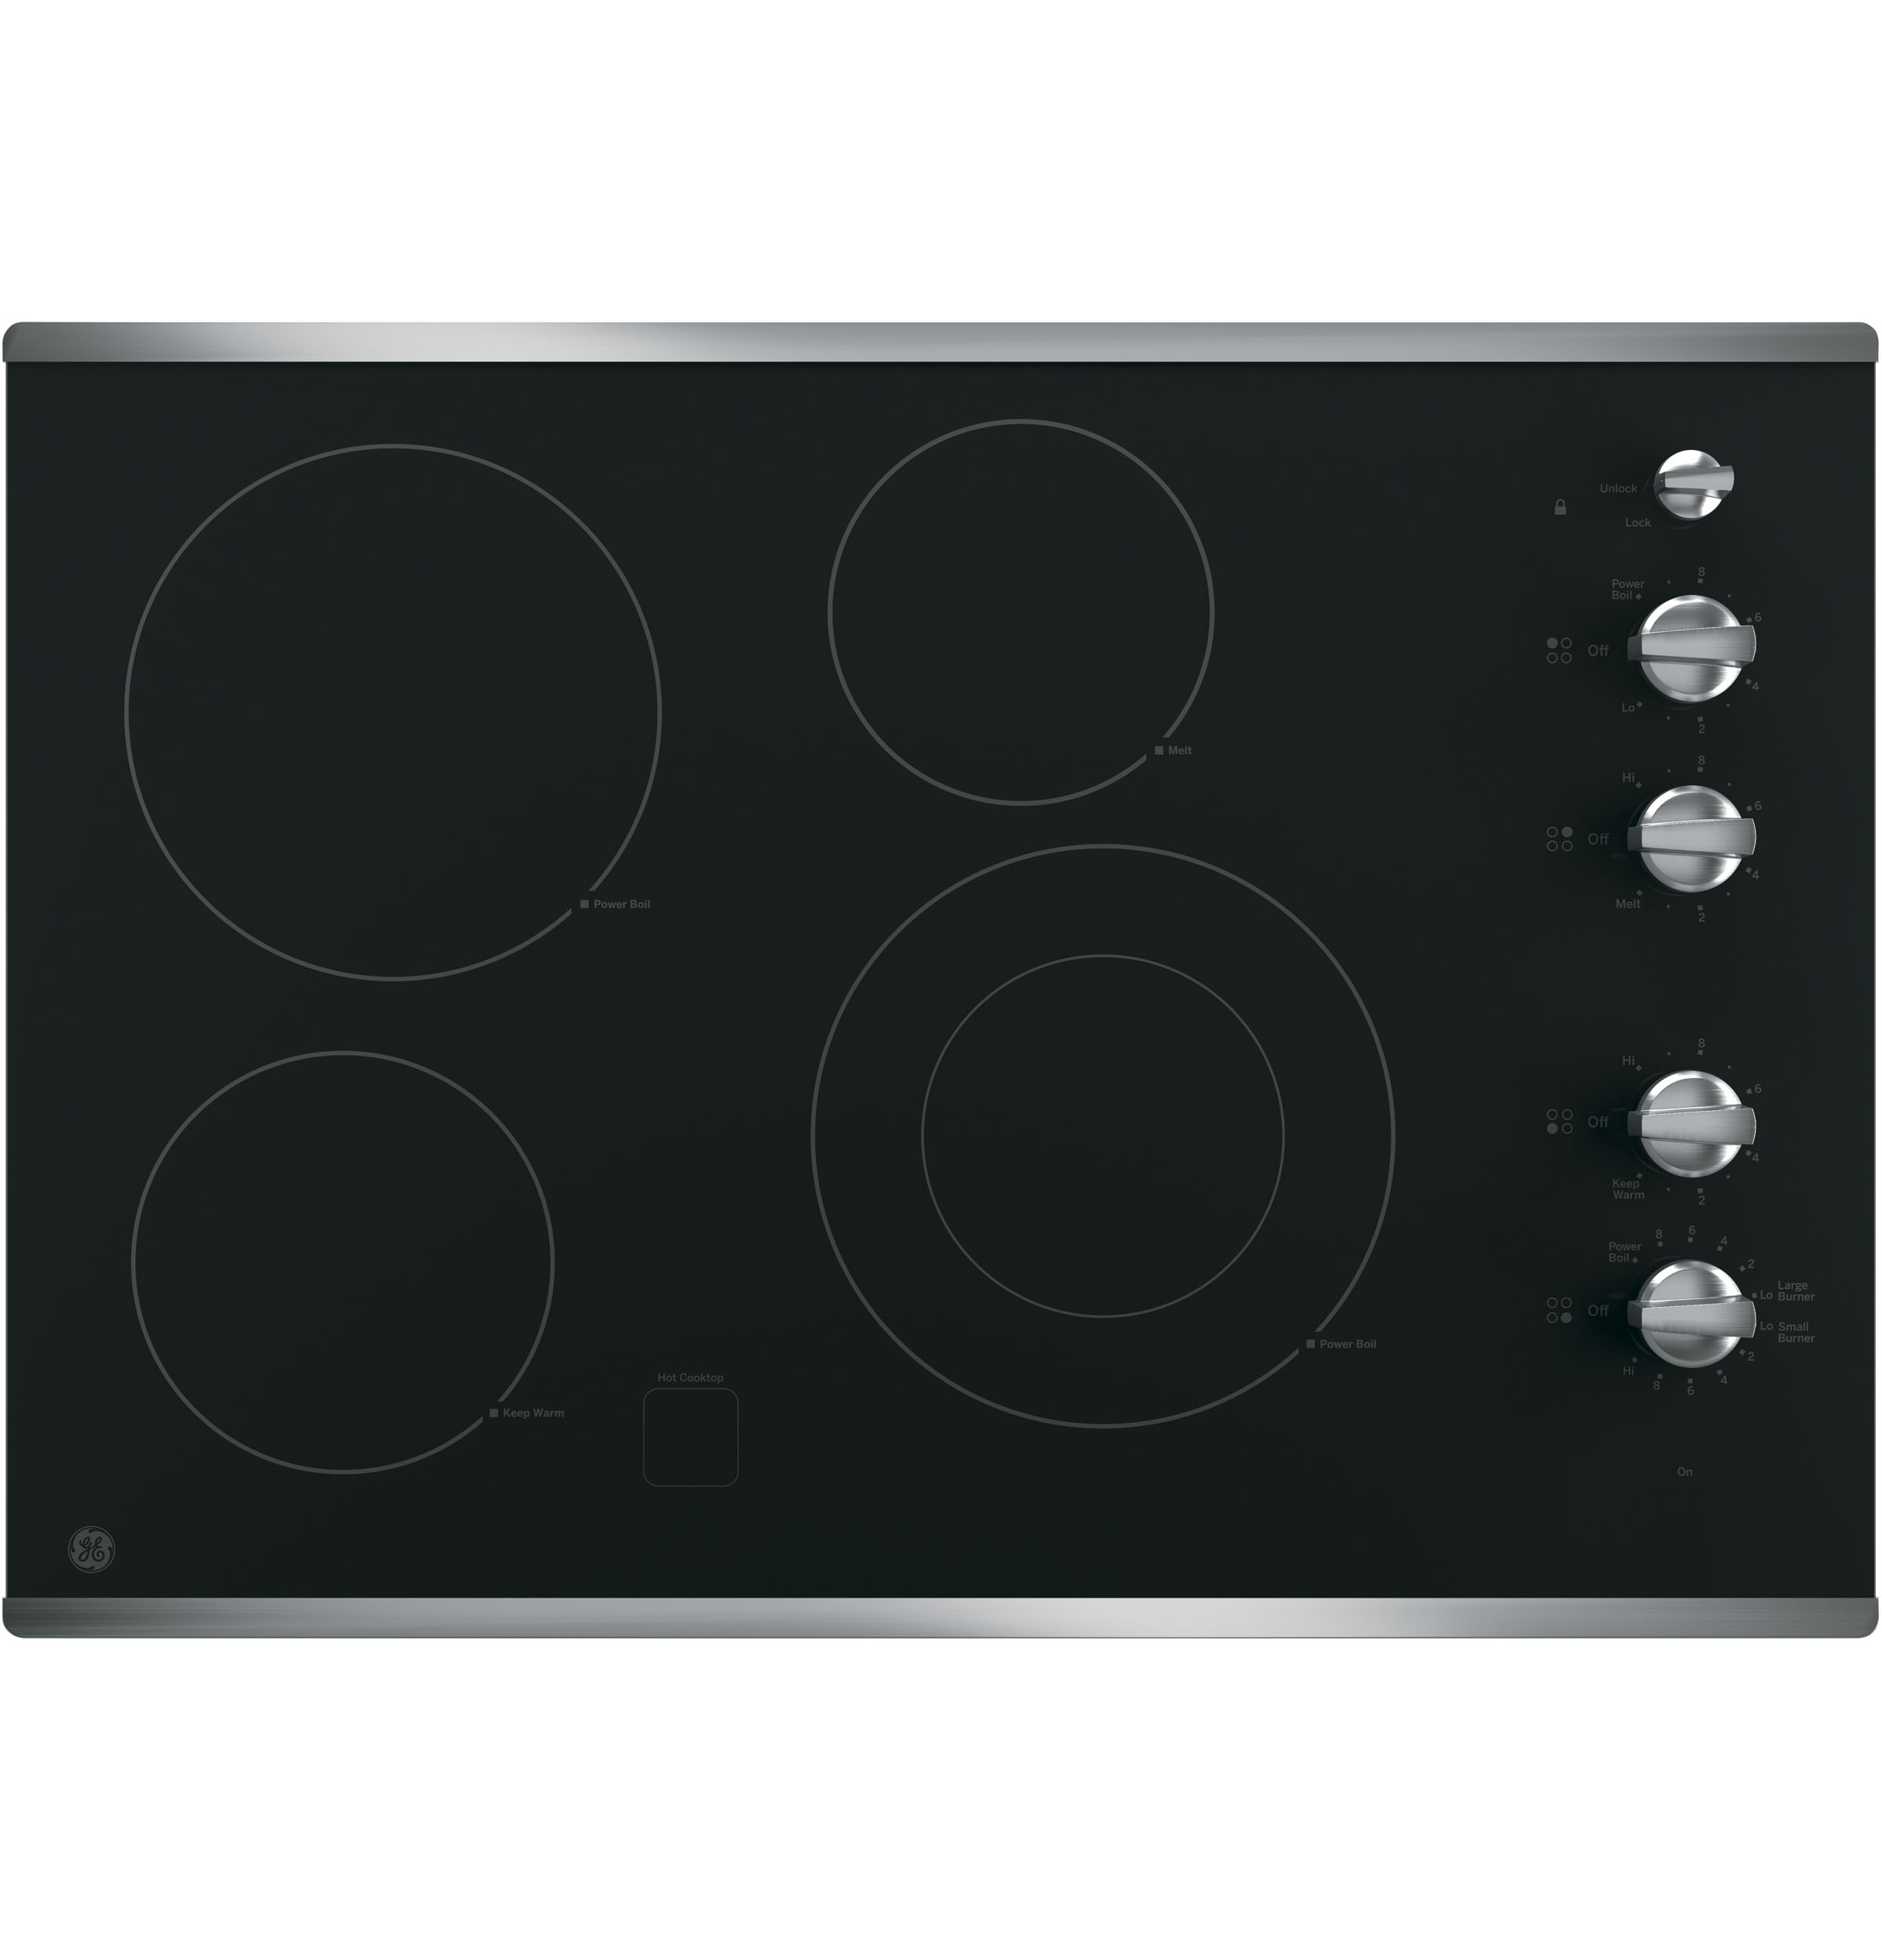 Ge 30 Built In Knob Control Electric Cooktop Jp3530sjss Wiring Diagram 240v Product Image